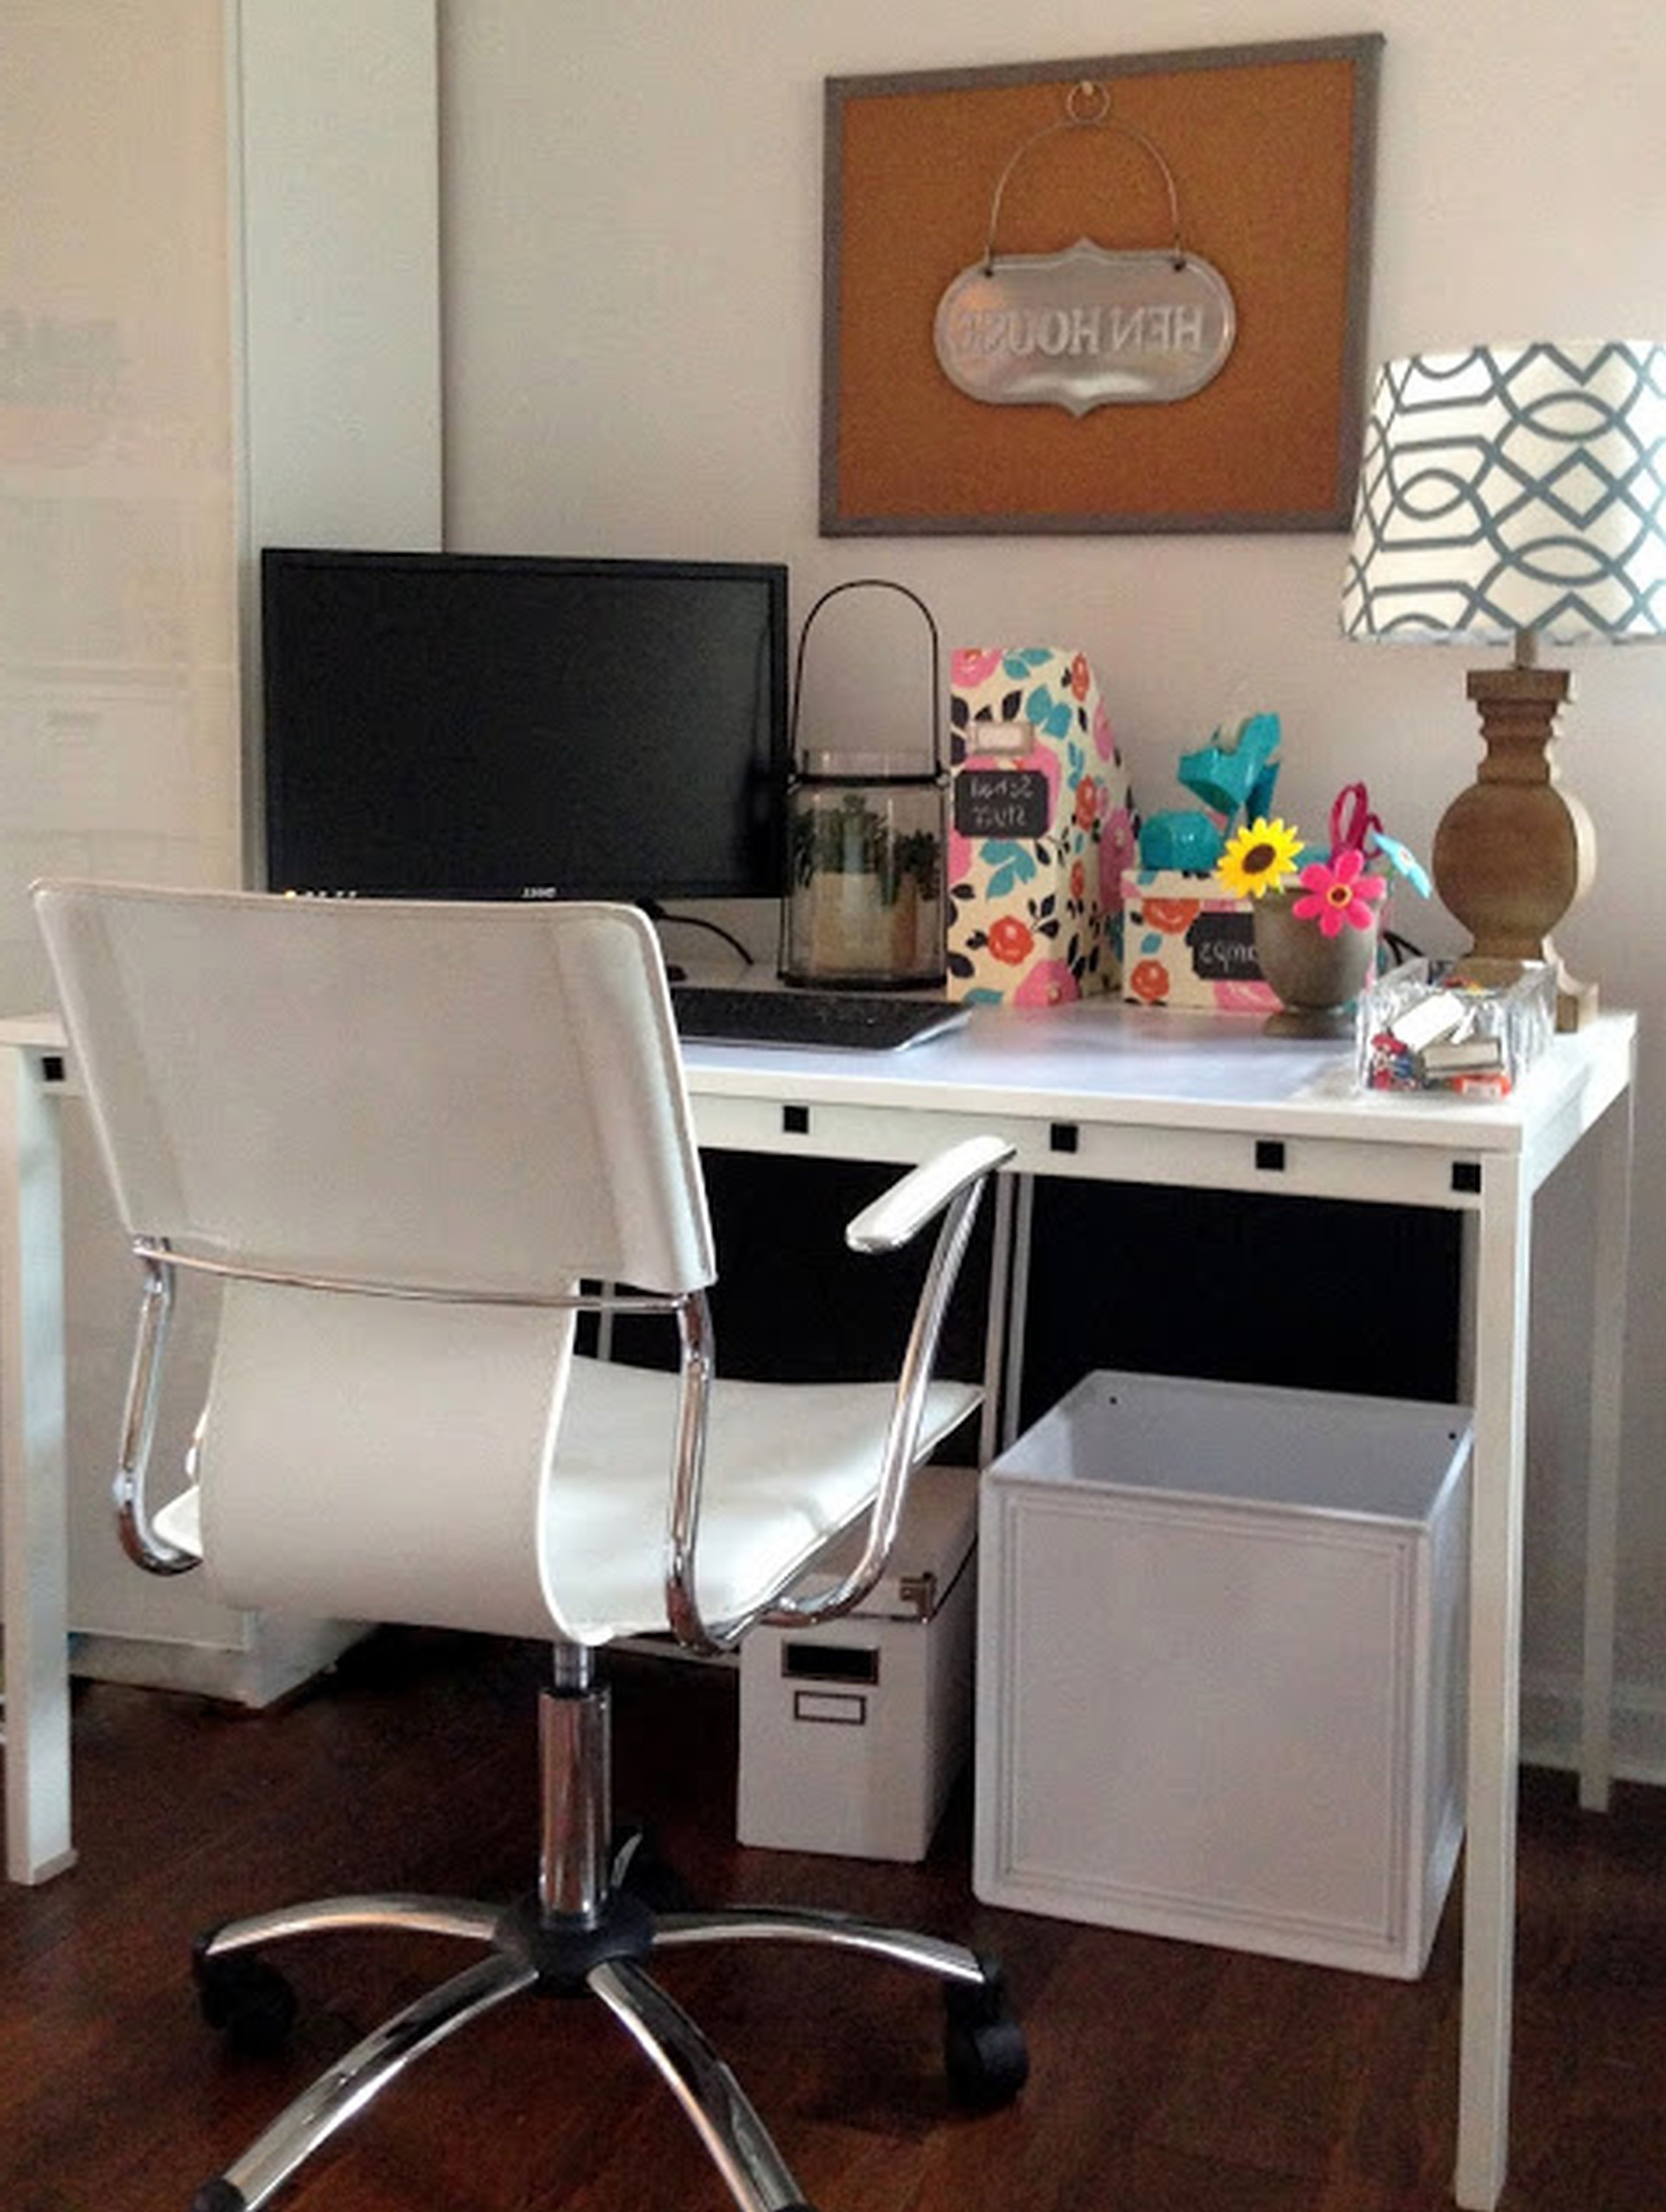 Magnificent Best Selections Of Ikea Desks For Small Spaces Homesfeed Largest Home Design Picture Inspirations Pitcheantrous